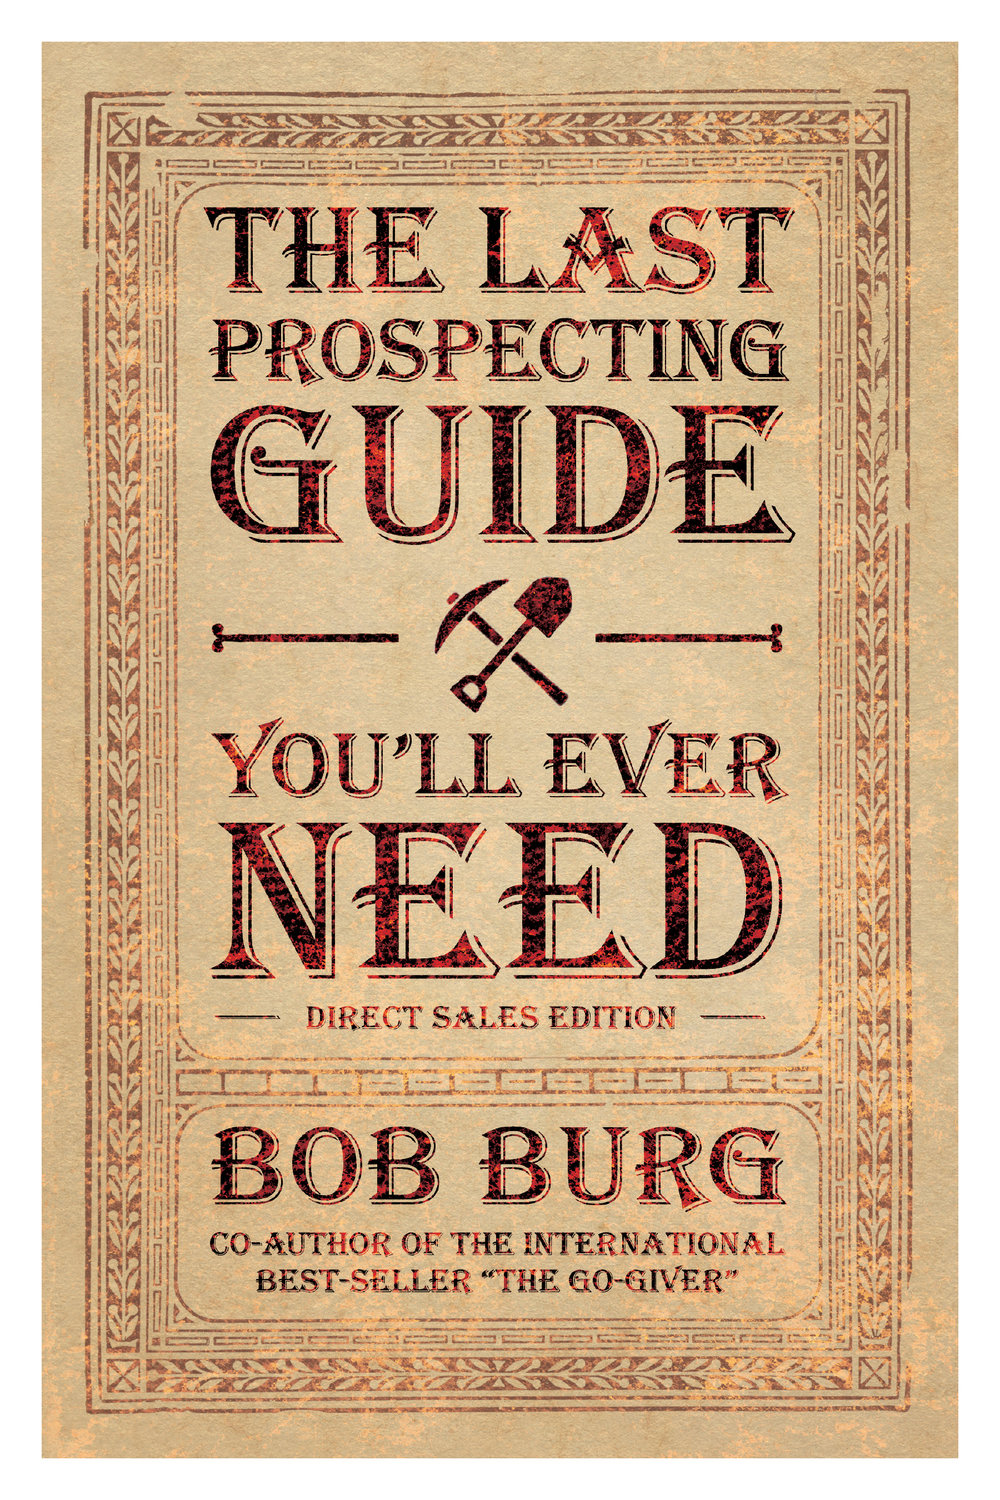 The_Last_Prospecting_Guide_You'll_Ever_Need.jpg